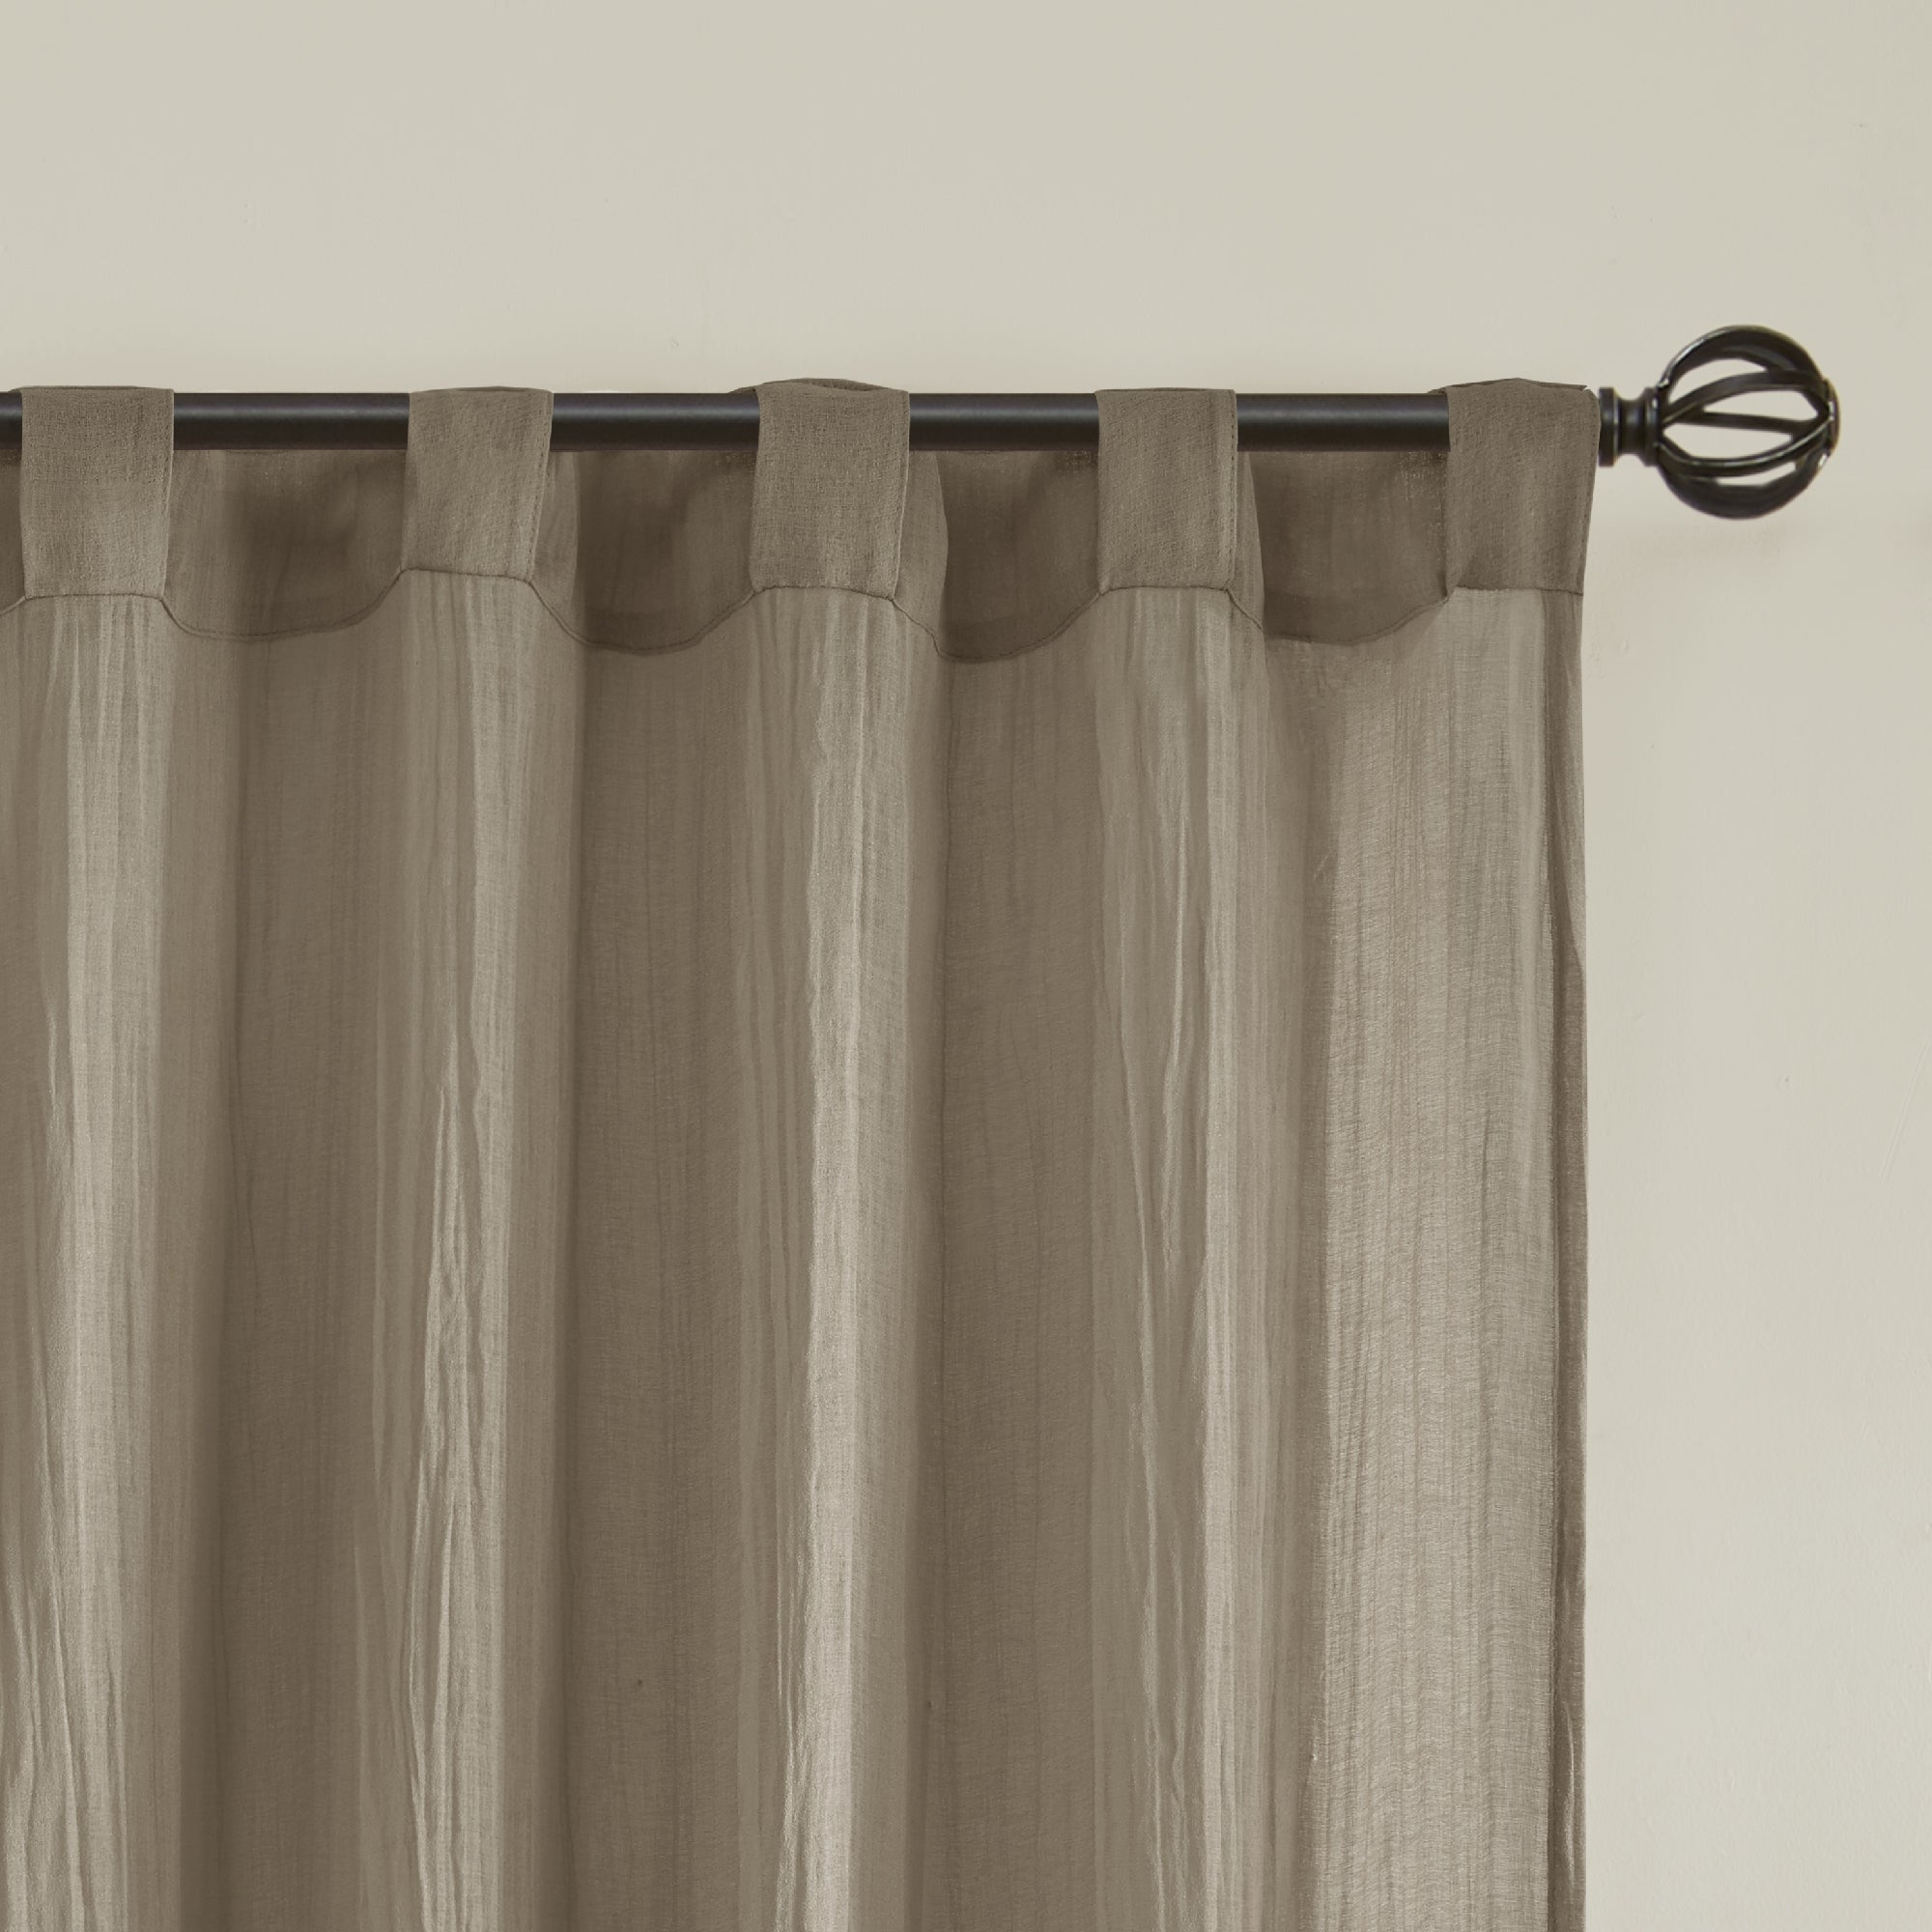 Most Recent Kaylee Solid Crushed Sheer Window Curtain Pairs Throughout Madison Park Kaylee Solid Crushed Sheer Window Curtain Pair (Gallery 5 of 20)